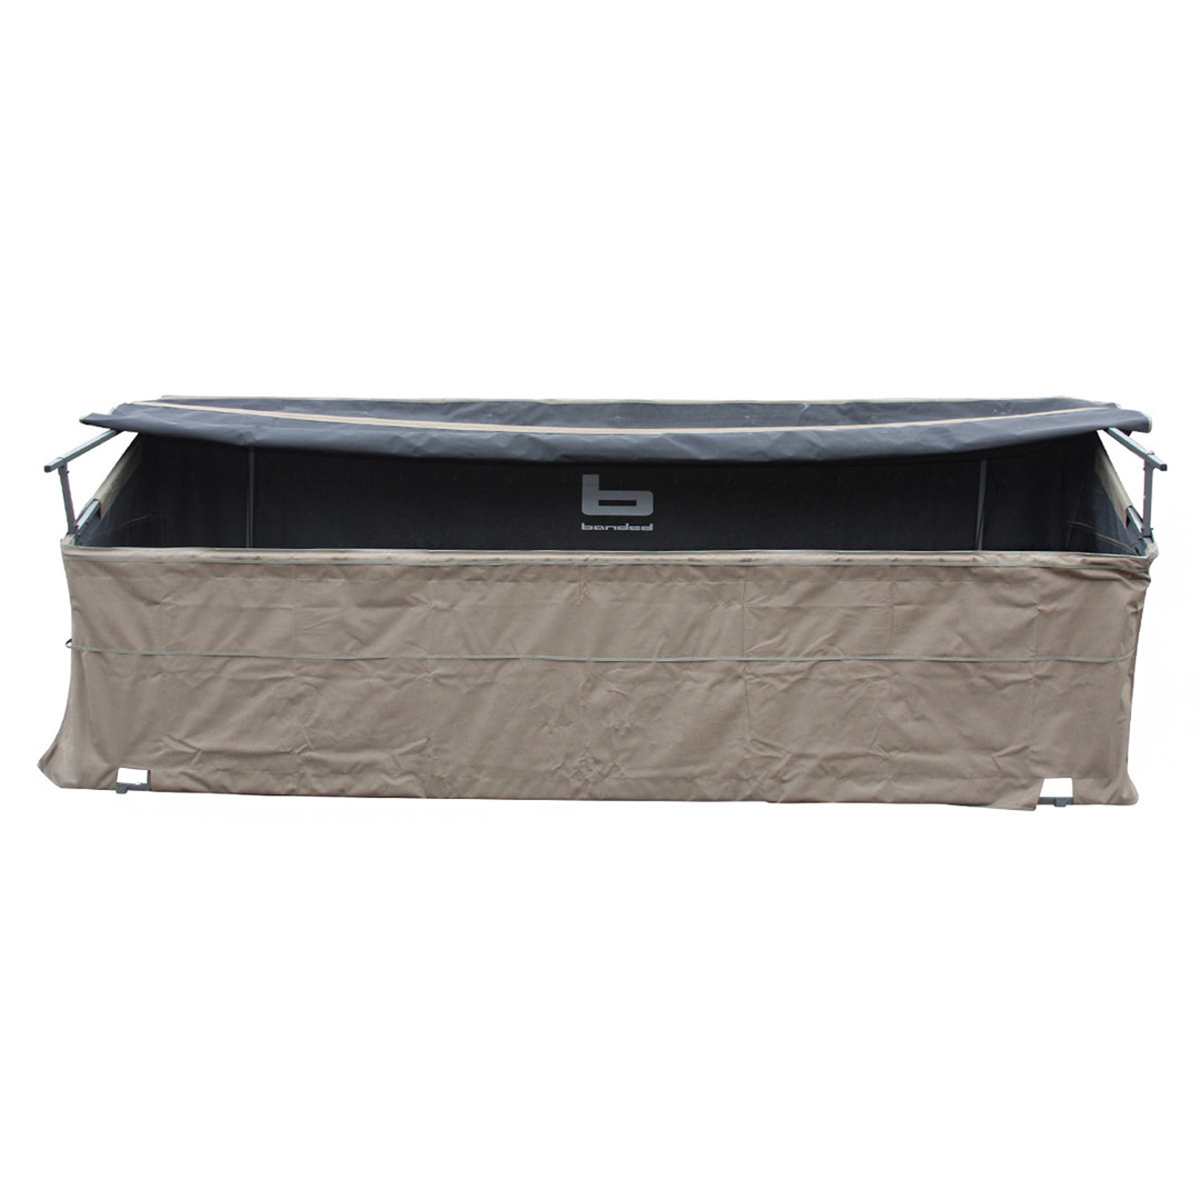 BANDED Axe Combo Boat and Shore Blind (8691-par)